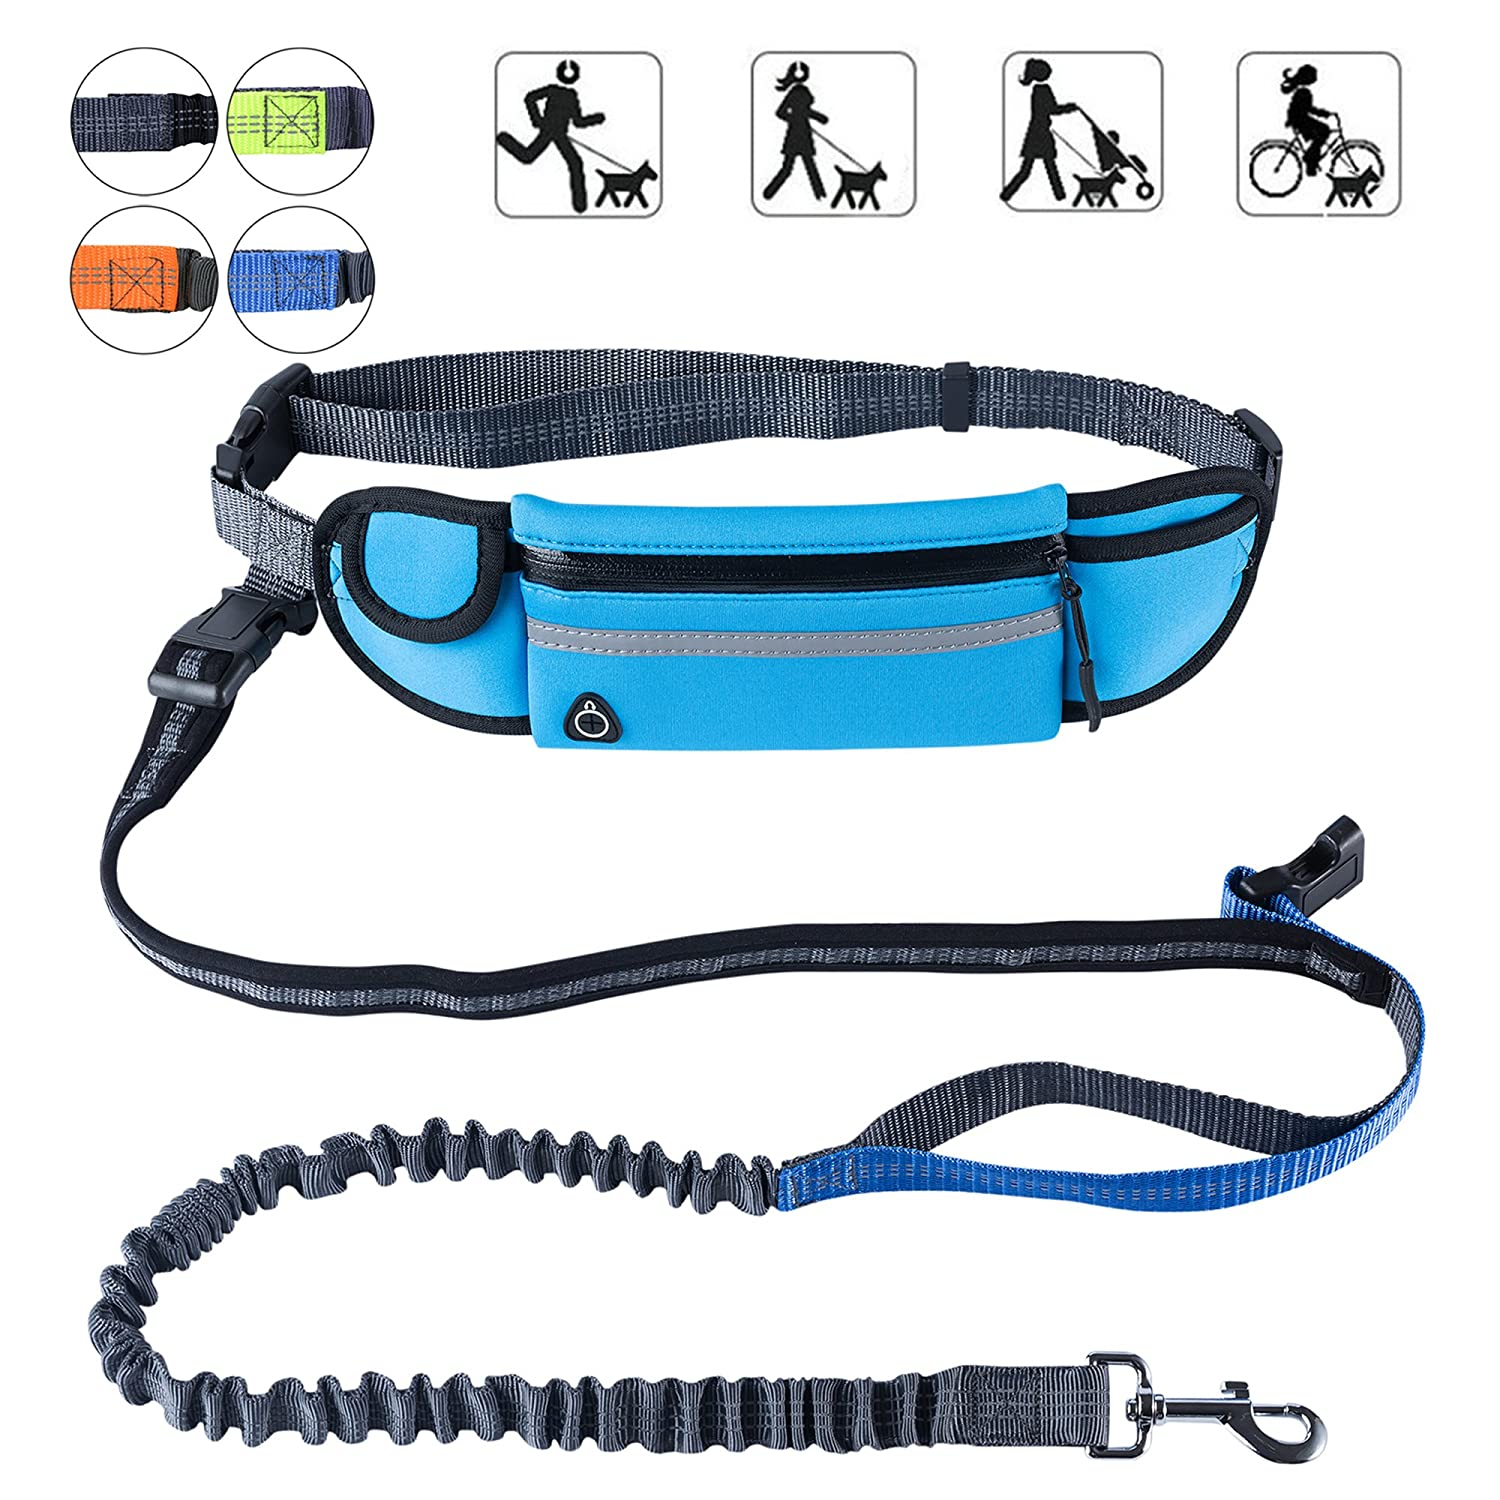 """PetforCity Hands Free Dog Running Leash with Waist Pocket Adjustable Belt Shock Absorbing Bungee Fits up to 45""""Waist YouTop"""